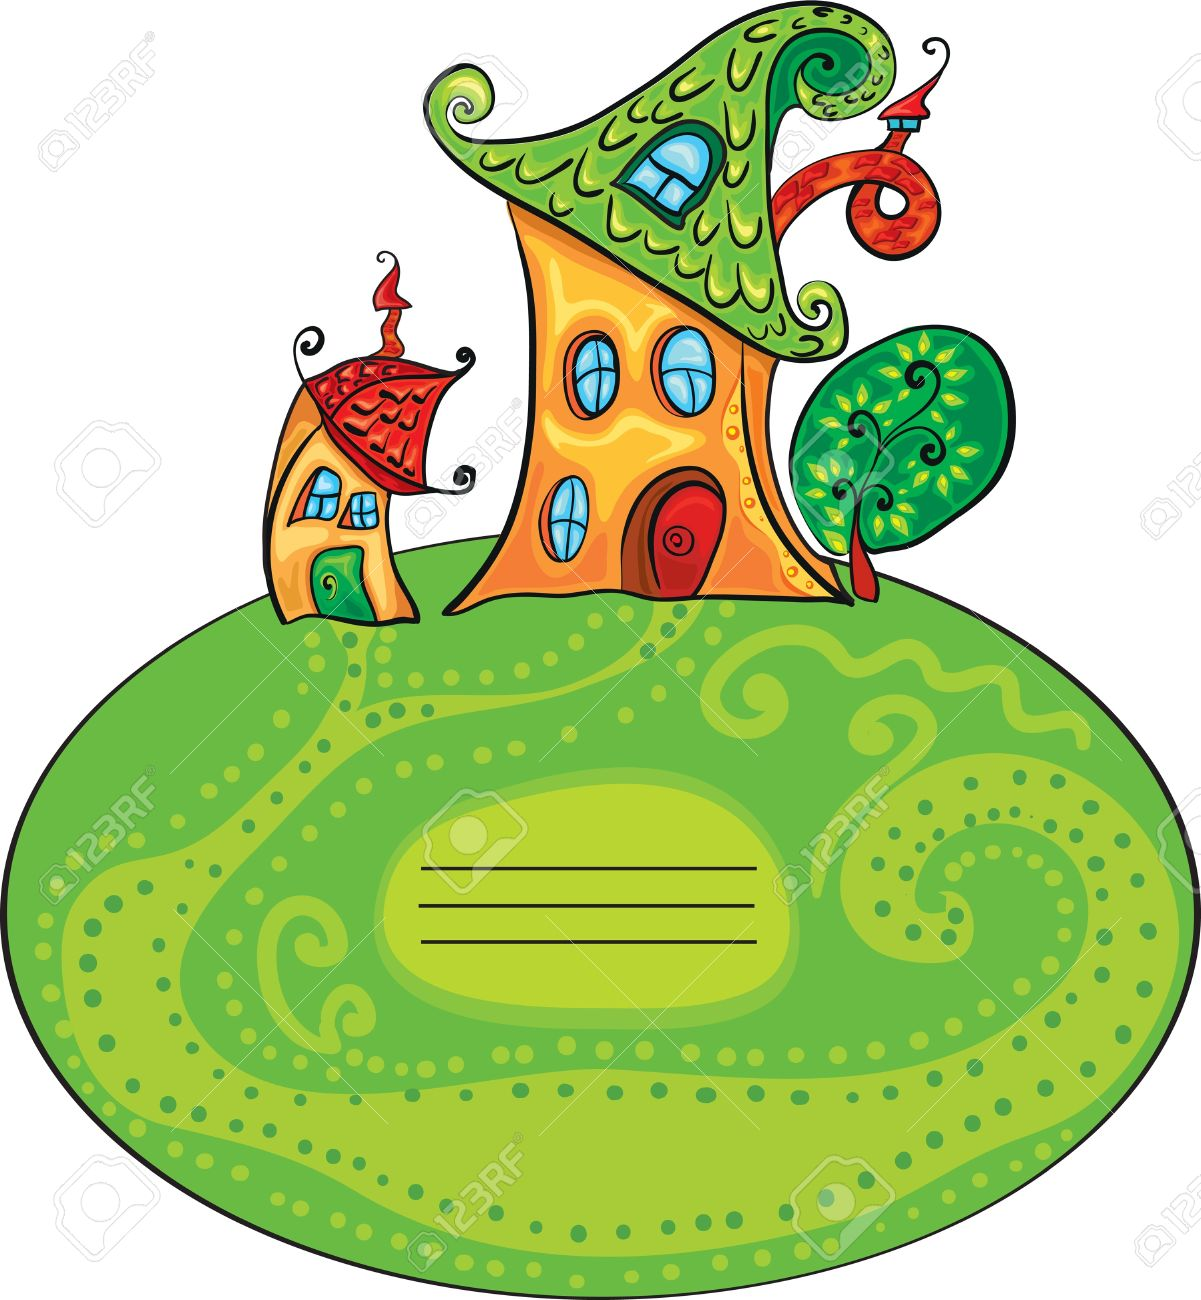 356 Fairytale Cottage Stock Vector Illustration And Royalty Free ...